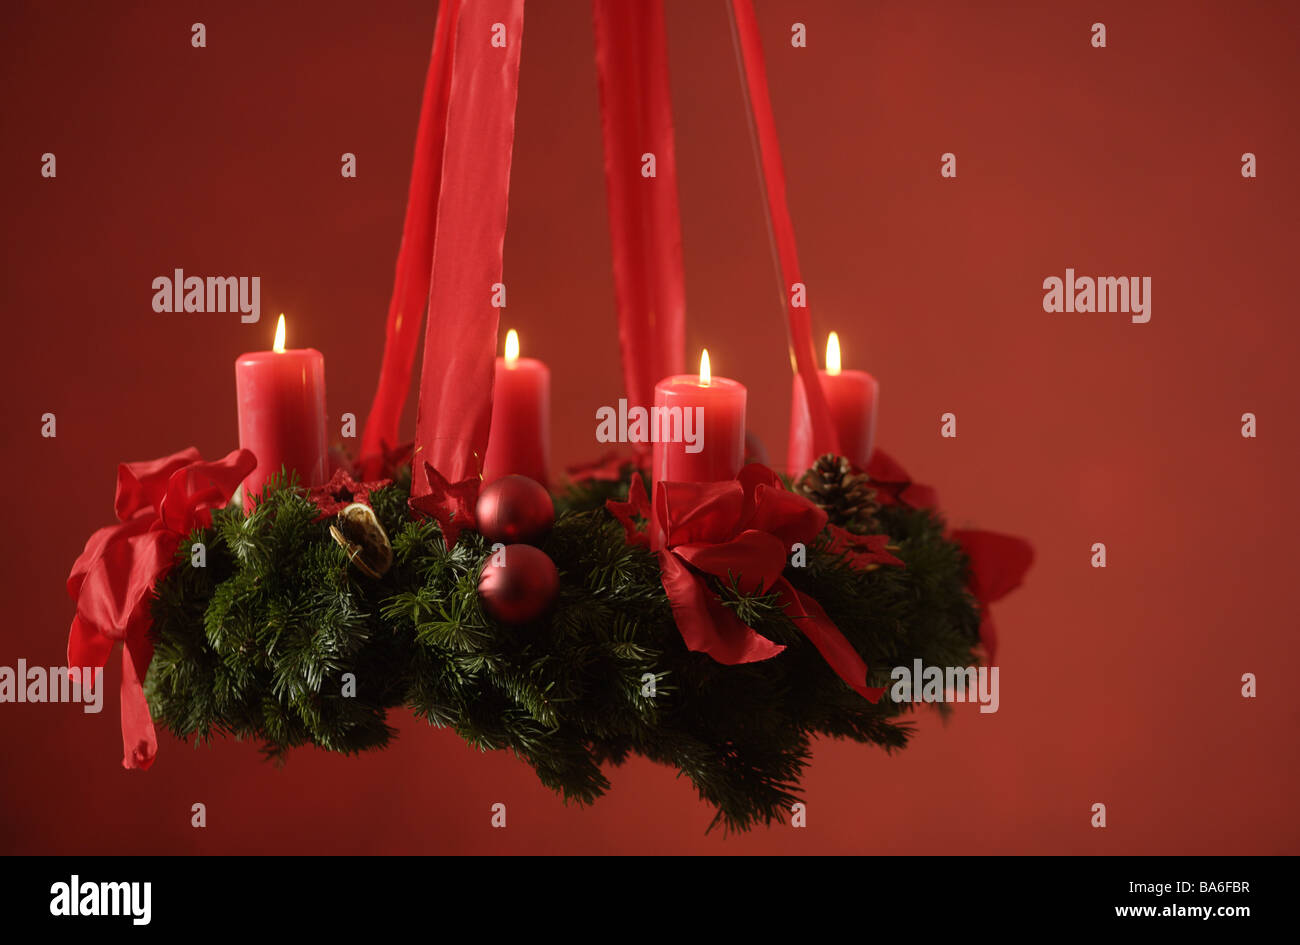 Advent Wreath Hangs Candles Four Series Sting Christmas Red Pre Tradition Like Mood Silence